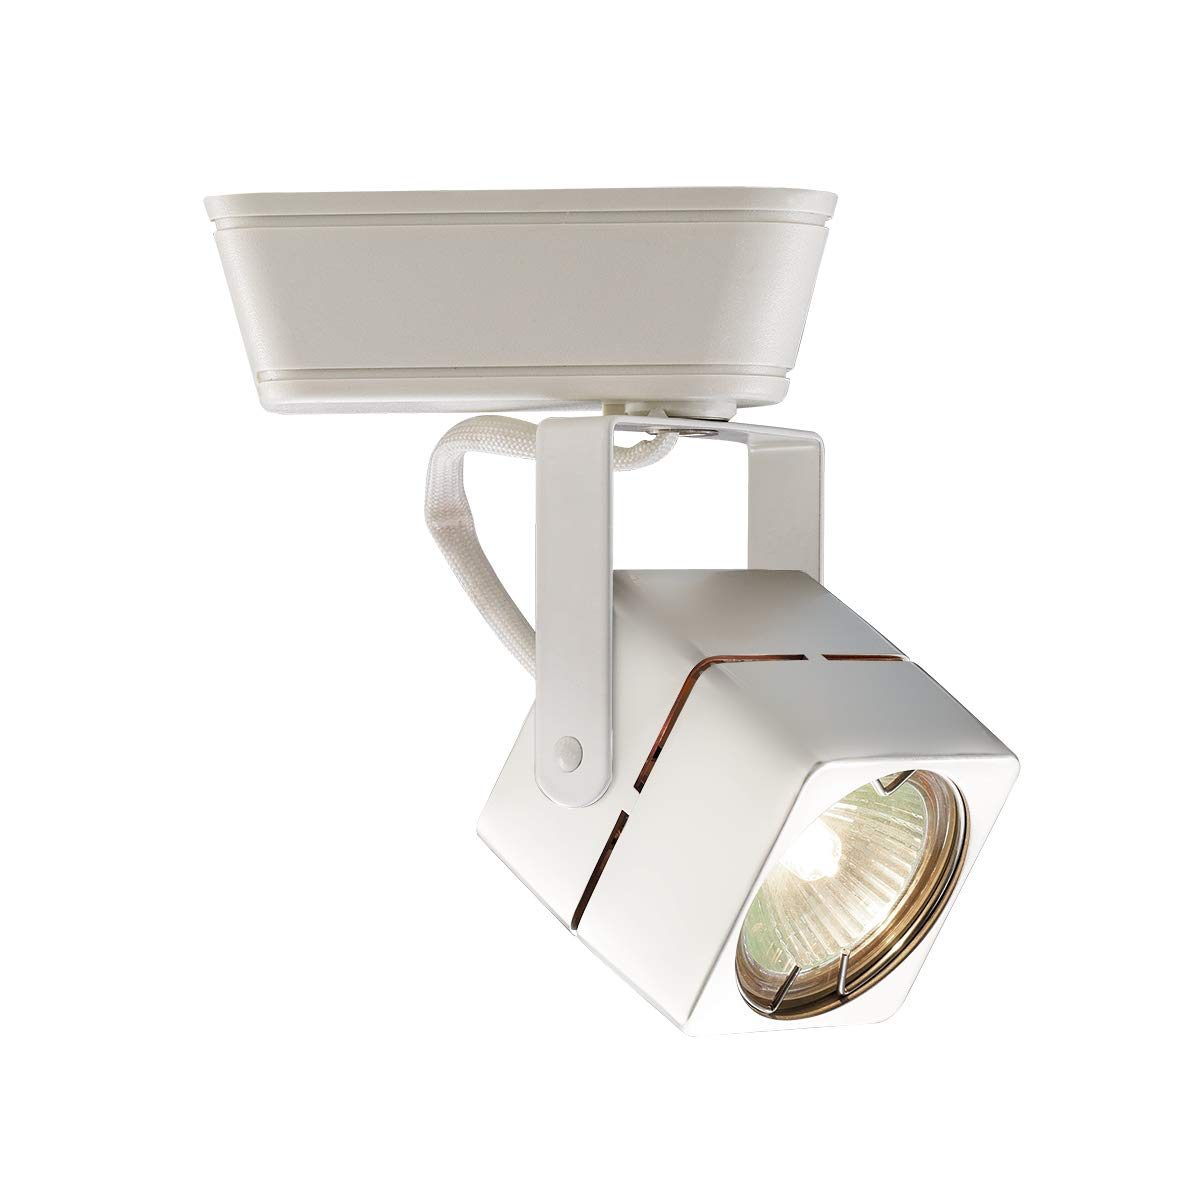 WAC Lighting HHT-802-WT Low Voltage Track Fixture, White